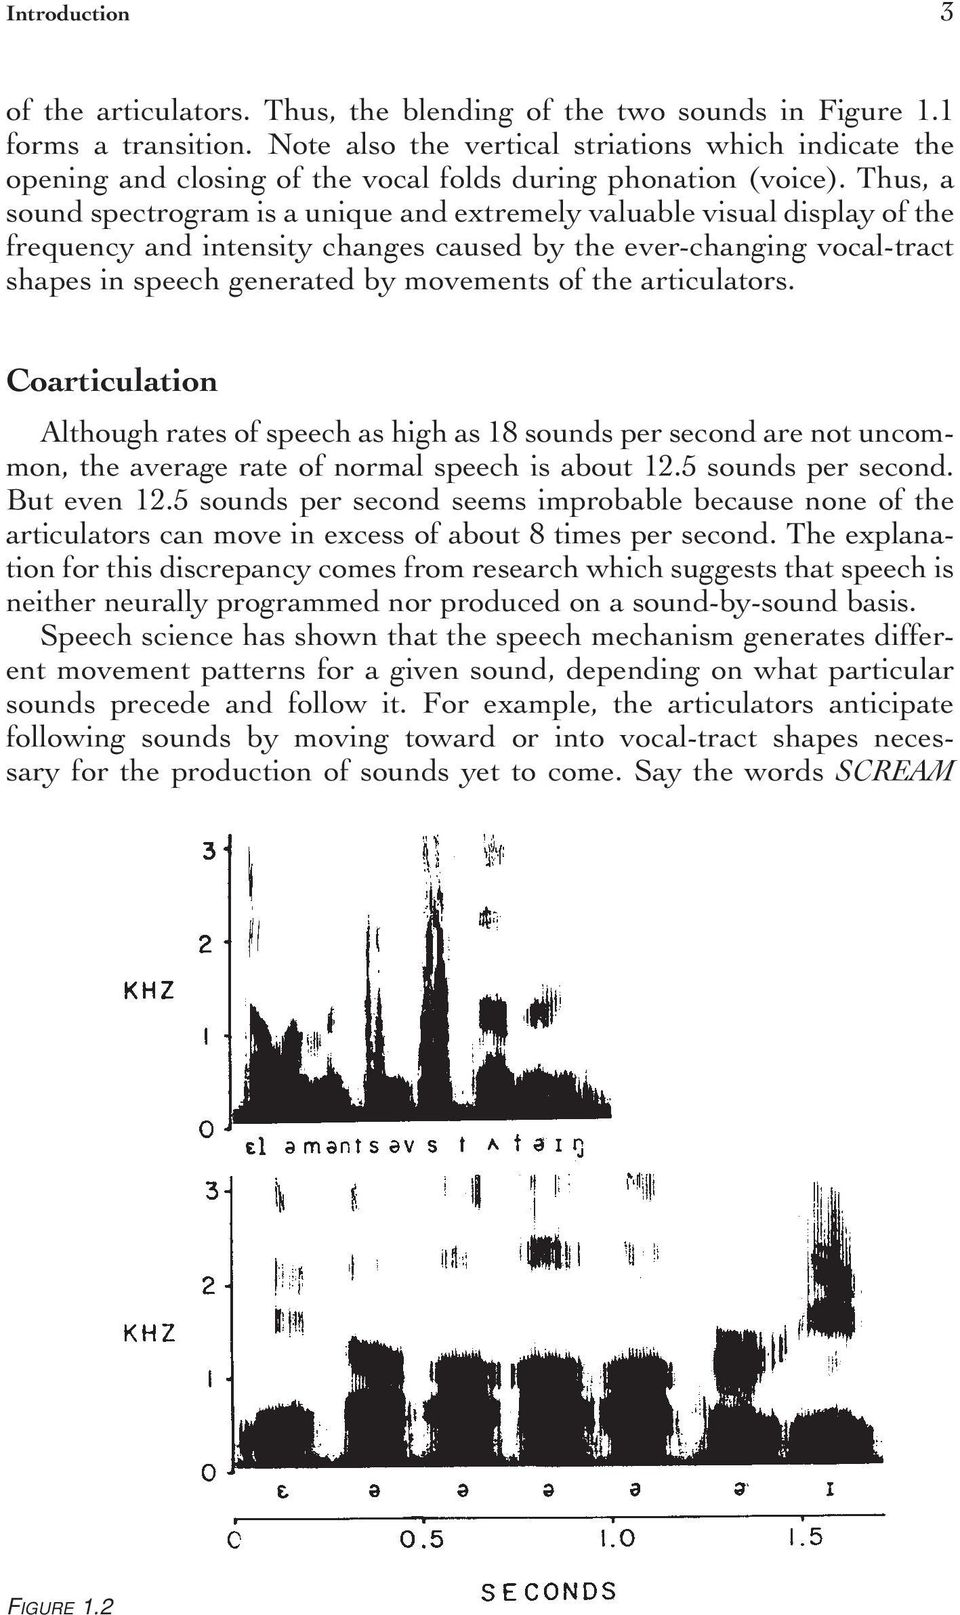 Thus, a sound spectrogram is a unique and extremely valuable visual display of the frequency and intensity changes caused by the ever-changing vocal-tract shapes in speech generated by movements of